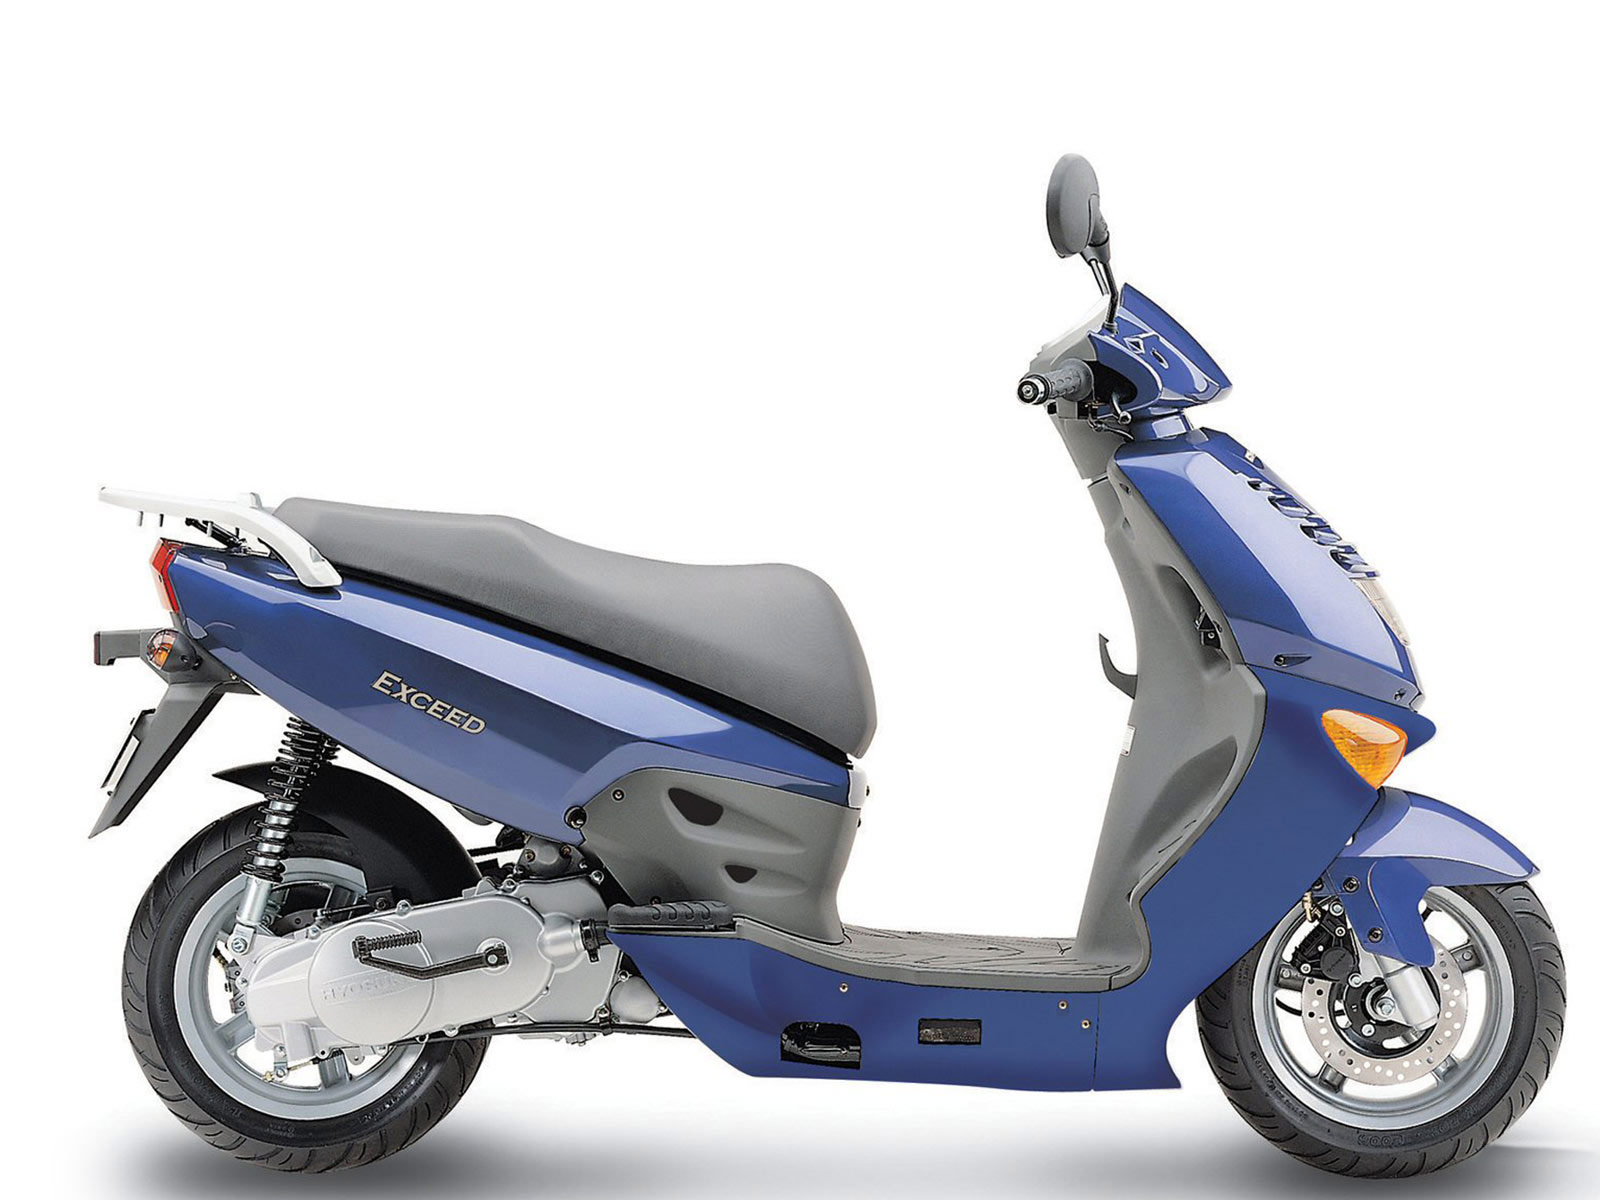 hyosung ms1 150 scooter pictures specifications insurance. Black Bedroom Furniture Sets. Home Design Ideas